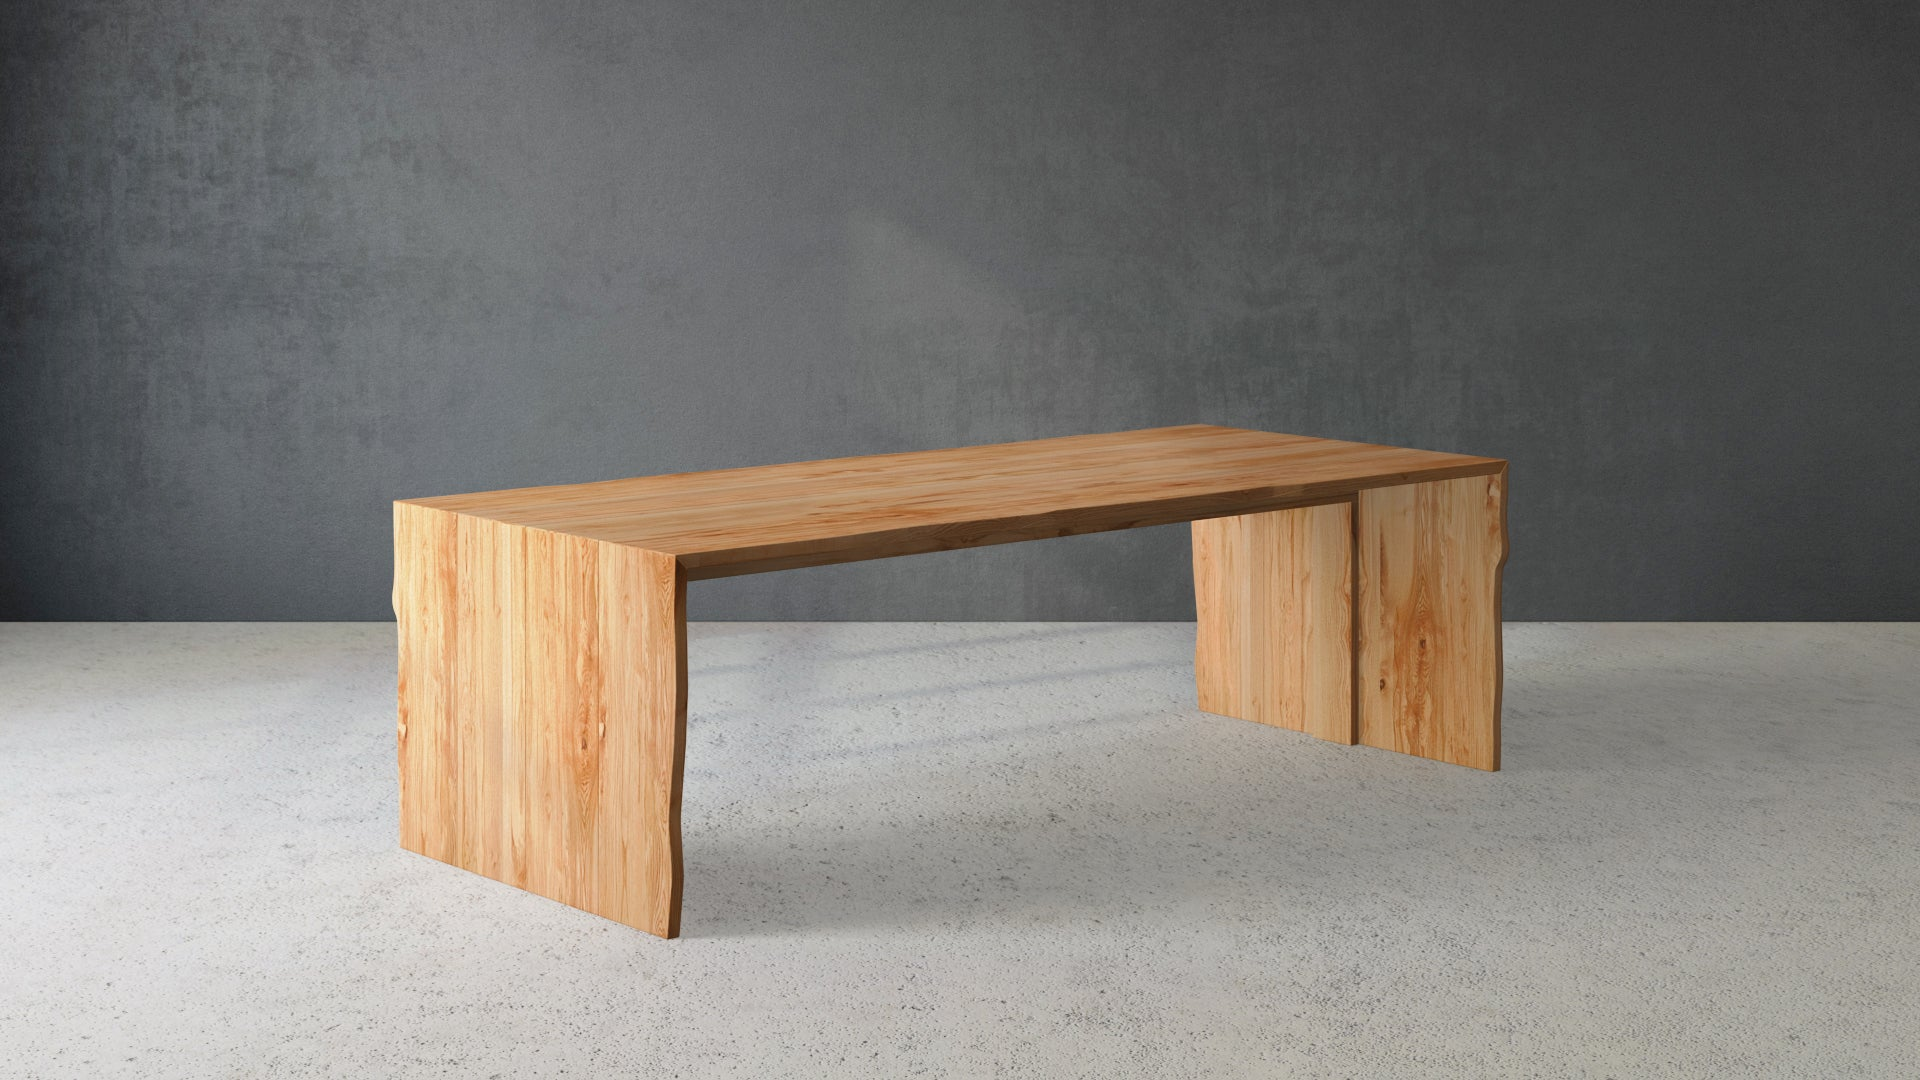 Live Edge Maple Natural Waterfall Edge Dining Table Design